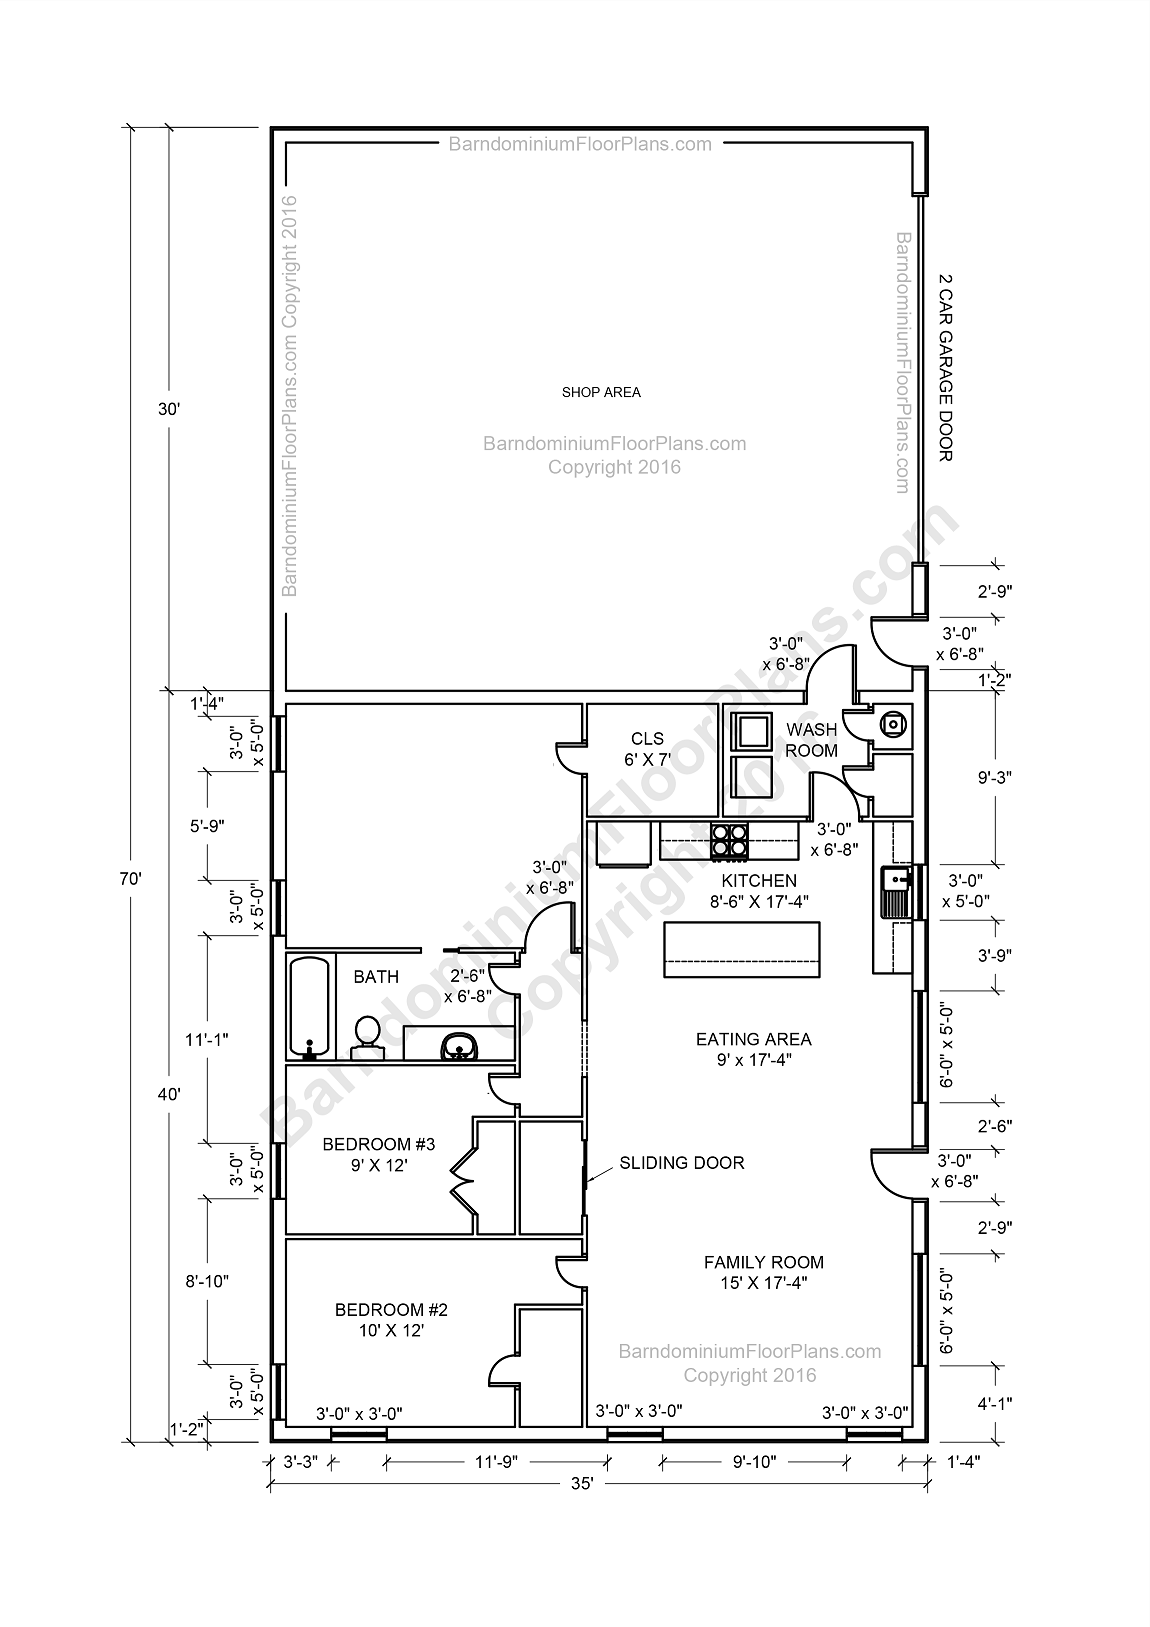 Barndominium Floor Plans Pole Barn House Plans And Metal Barn Homes Barndominium Floor Plans Barndominium Plans Shop House Plans Pole Barn House Plans